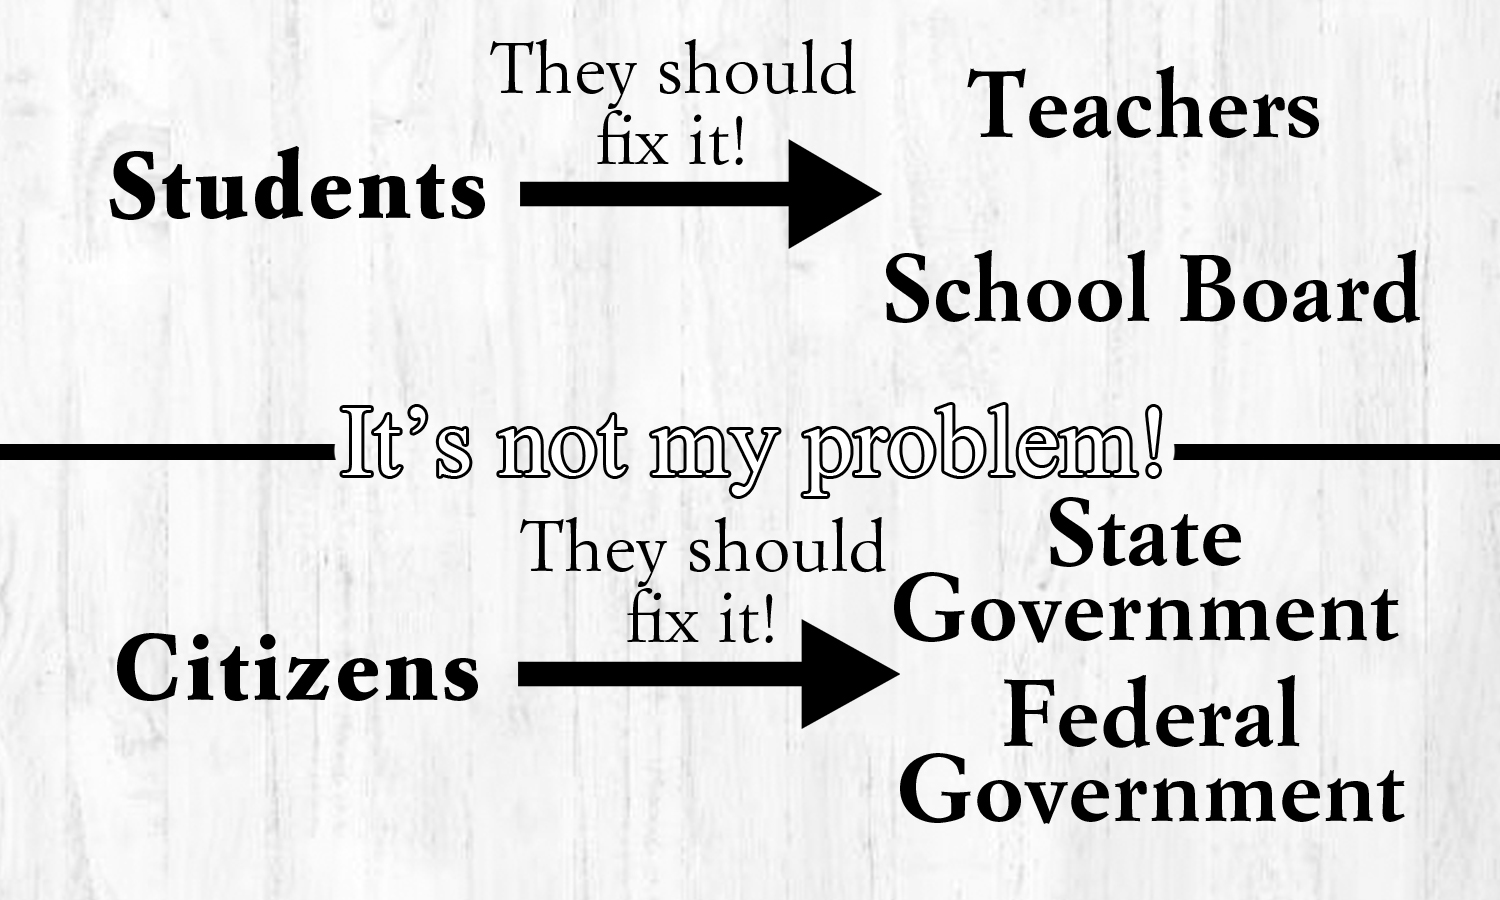 "Connections can be drawn between where students put their blame in a school environment and where citizens put their blame. In both cases, even if the higher ""powers"" weren't responsible for the problem, the lower ""powers"" expect them to fix it because the problem will always be the responsibility."